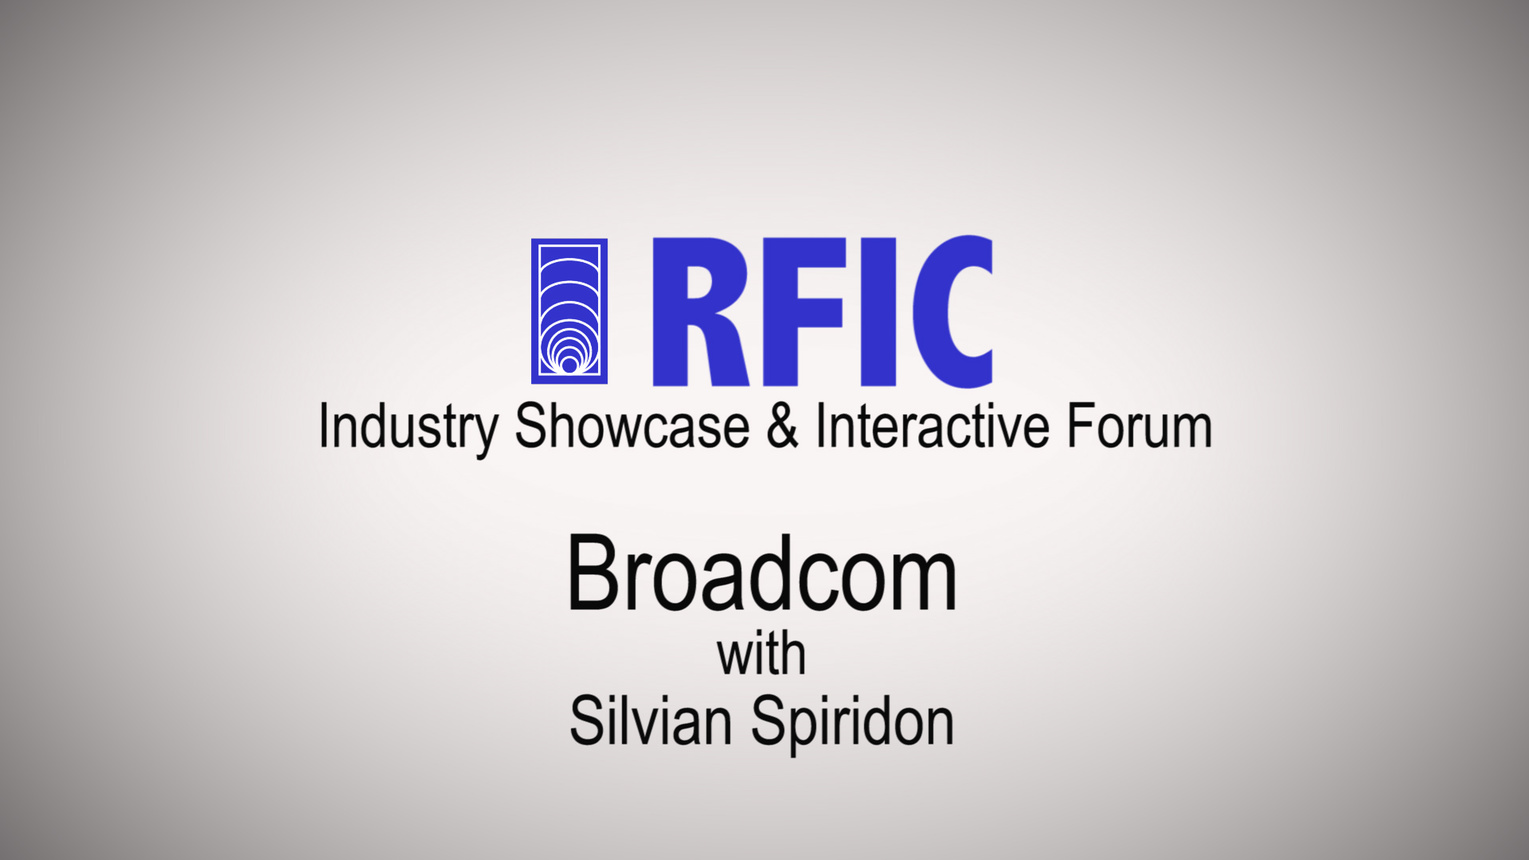 A 28nm, 475mW, 0.4-to-1.7GHz Embedded Transceiver Front-End Enabling High-Speed Data Streaming Within Home Cable Networks: RFIC Industry Showcase